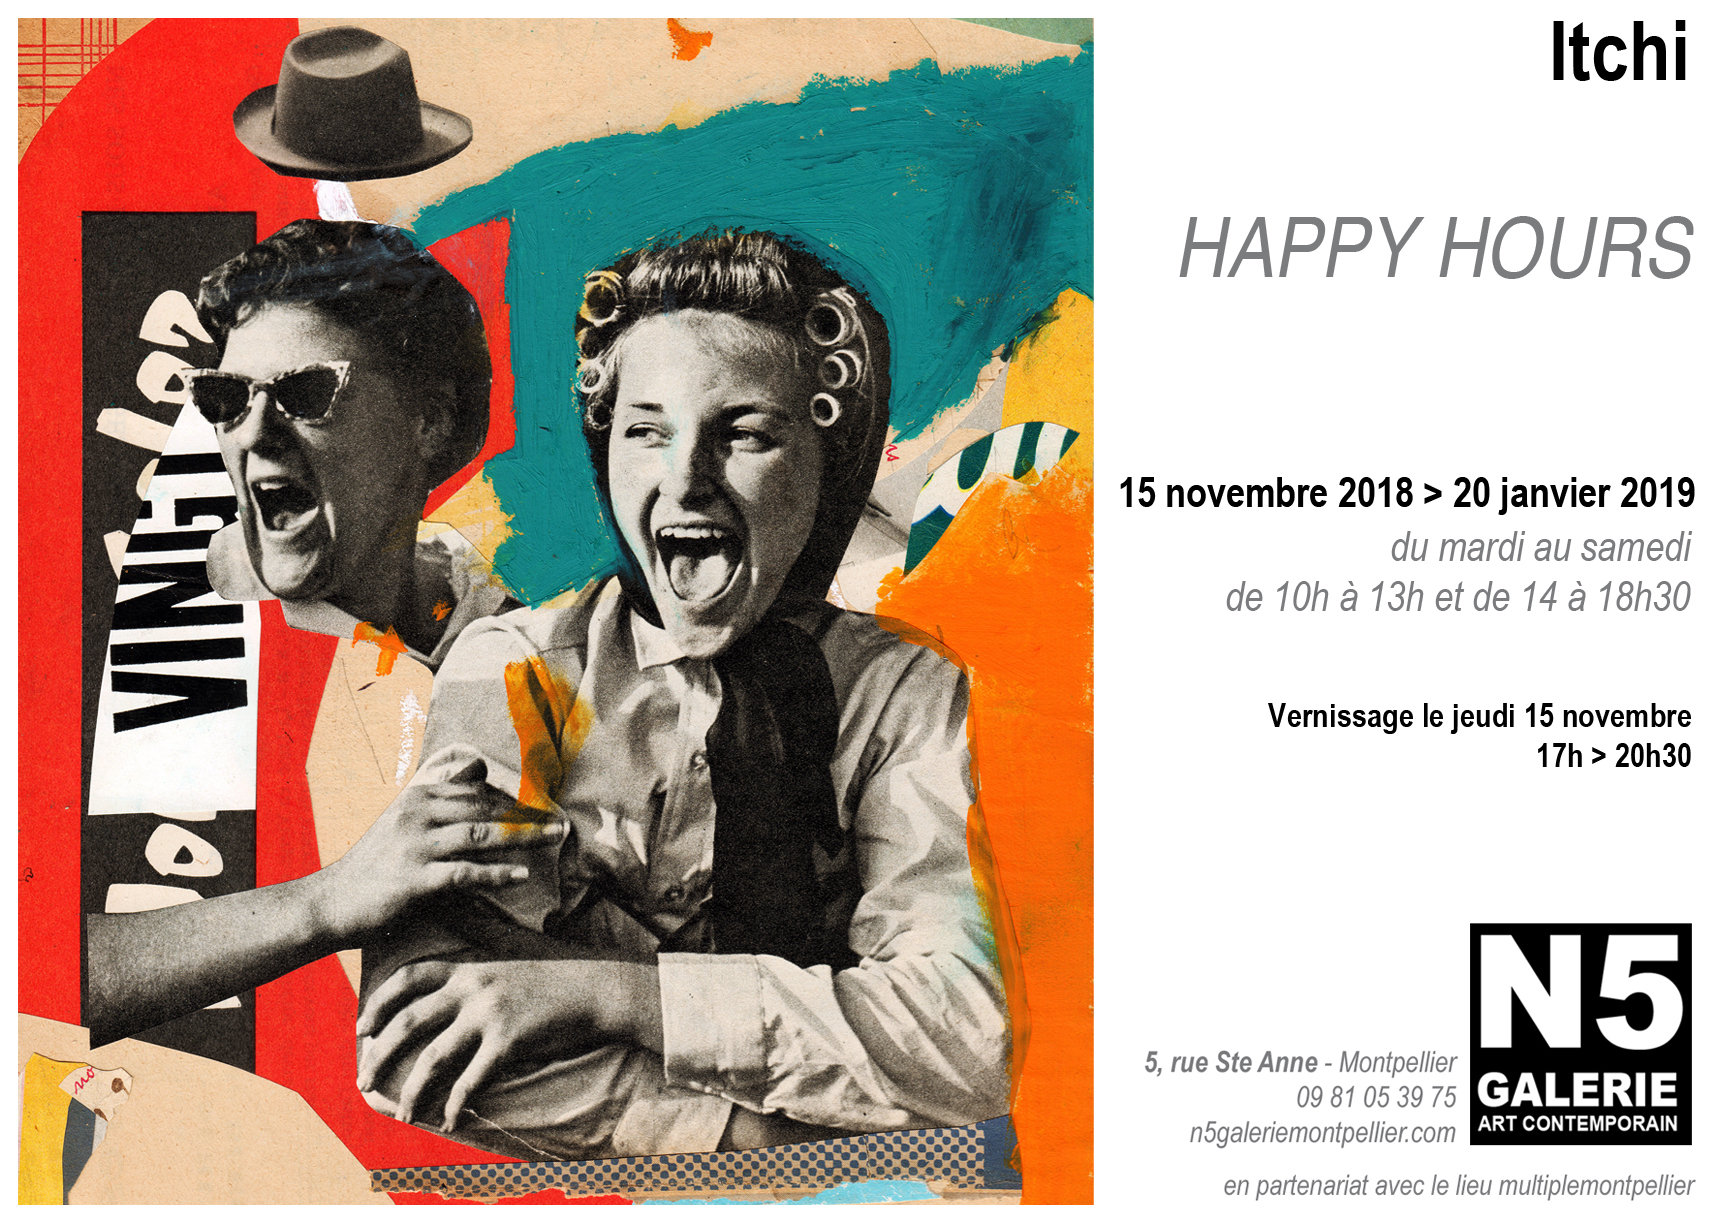 N5 galerie_exposition_Collages_Happy Hours_ITCHI_Montpellier_2018_2019